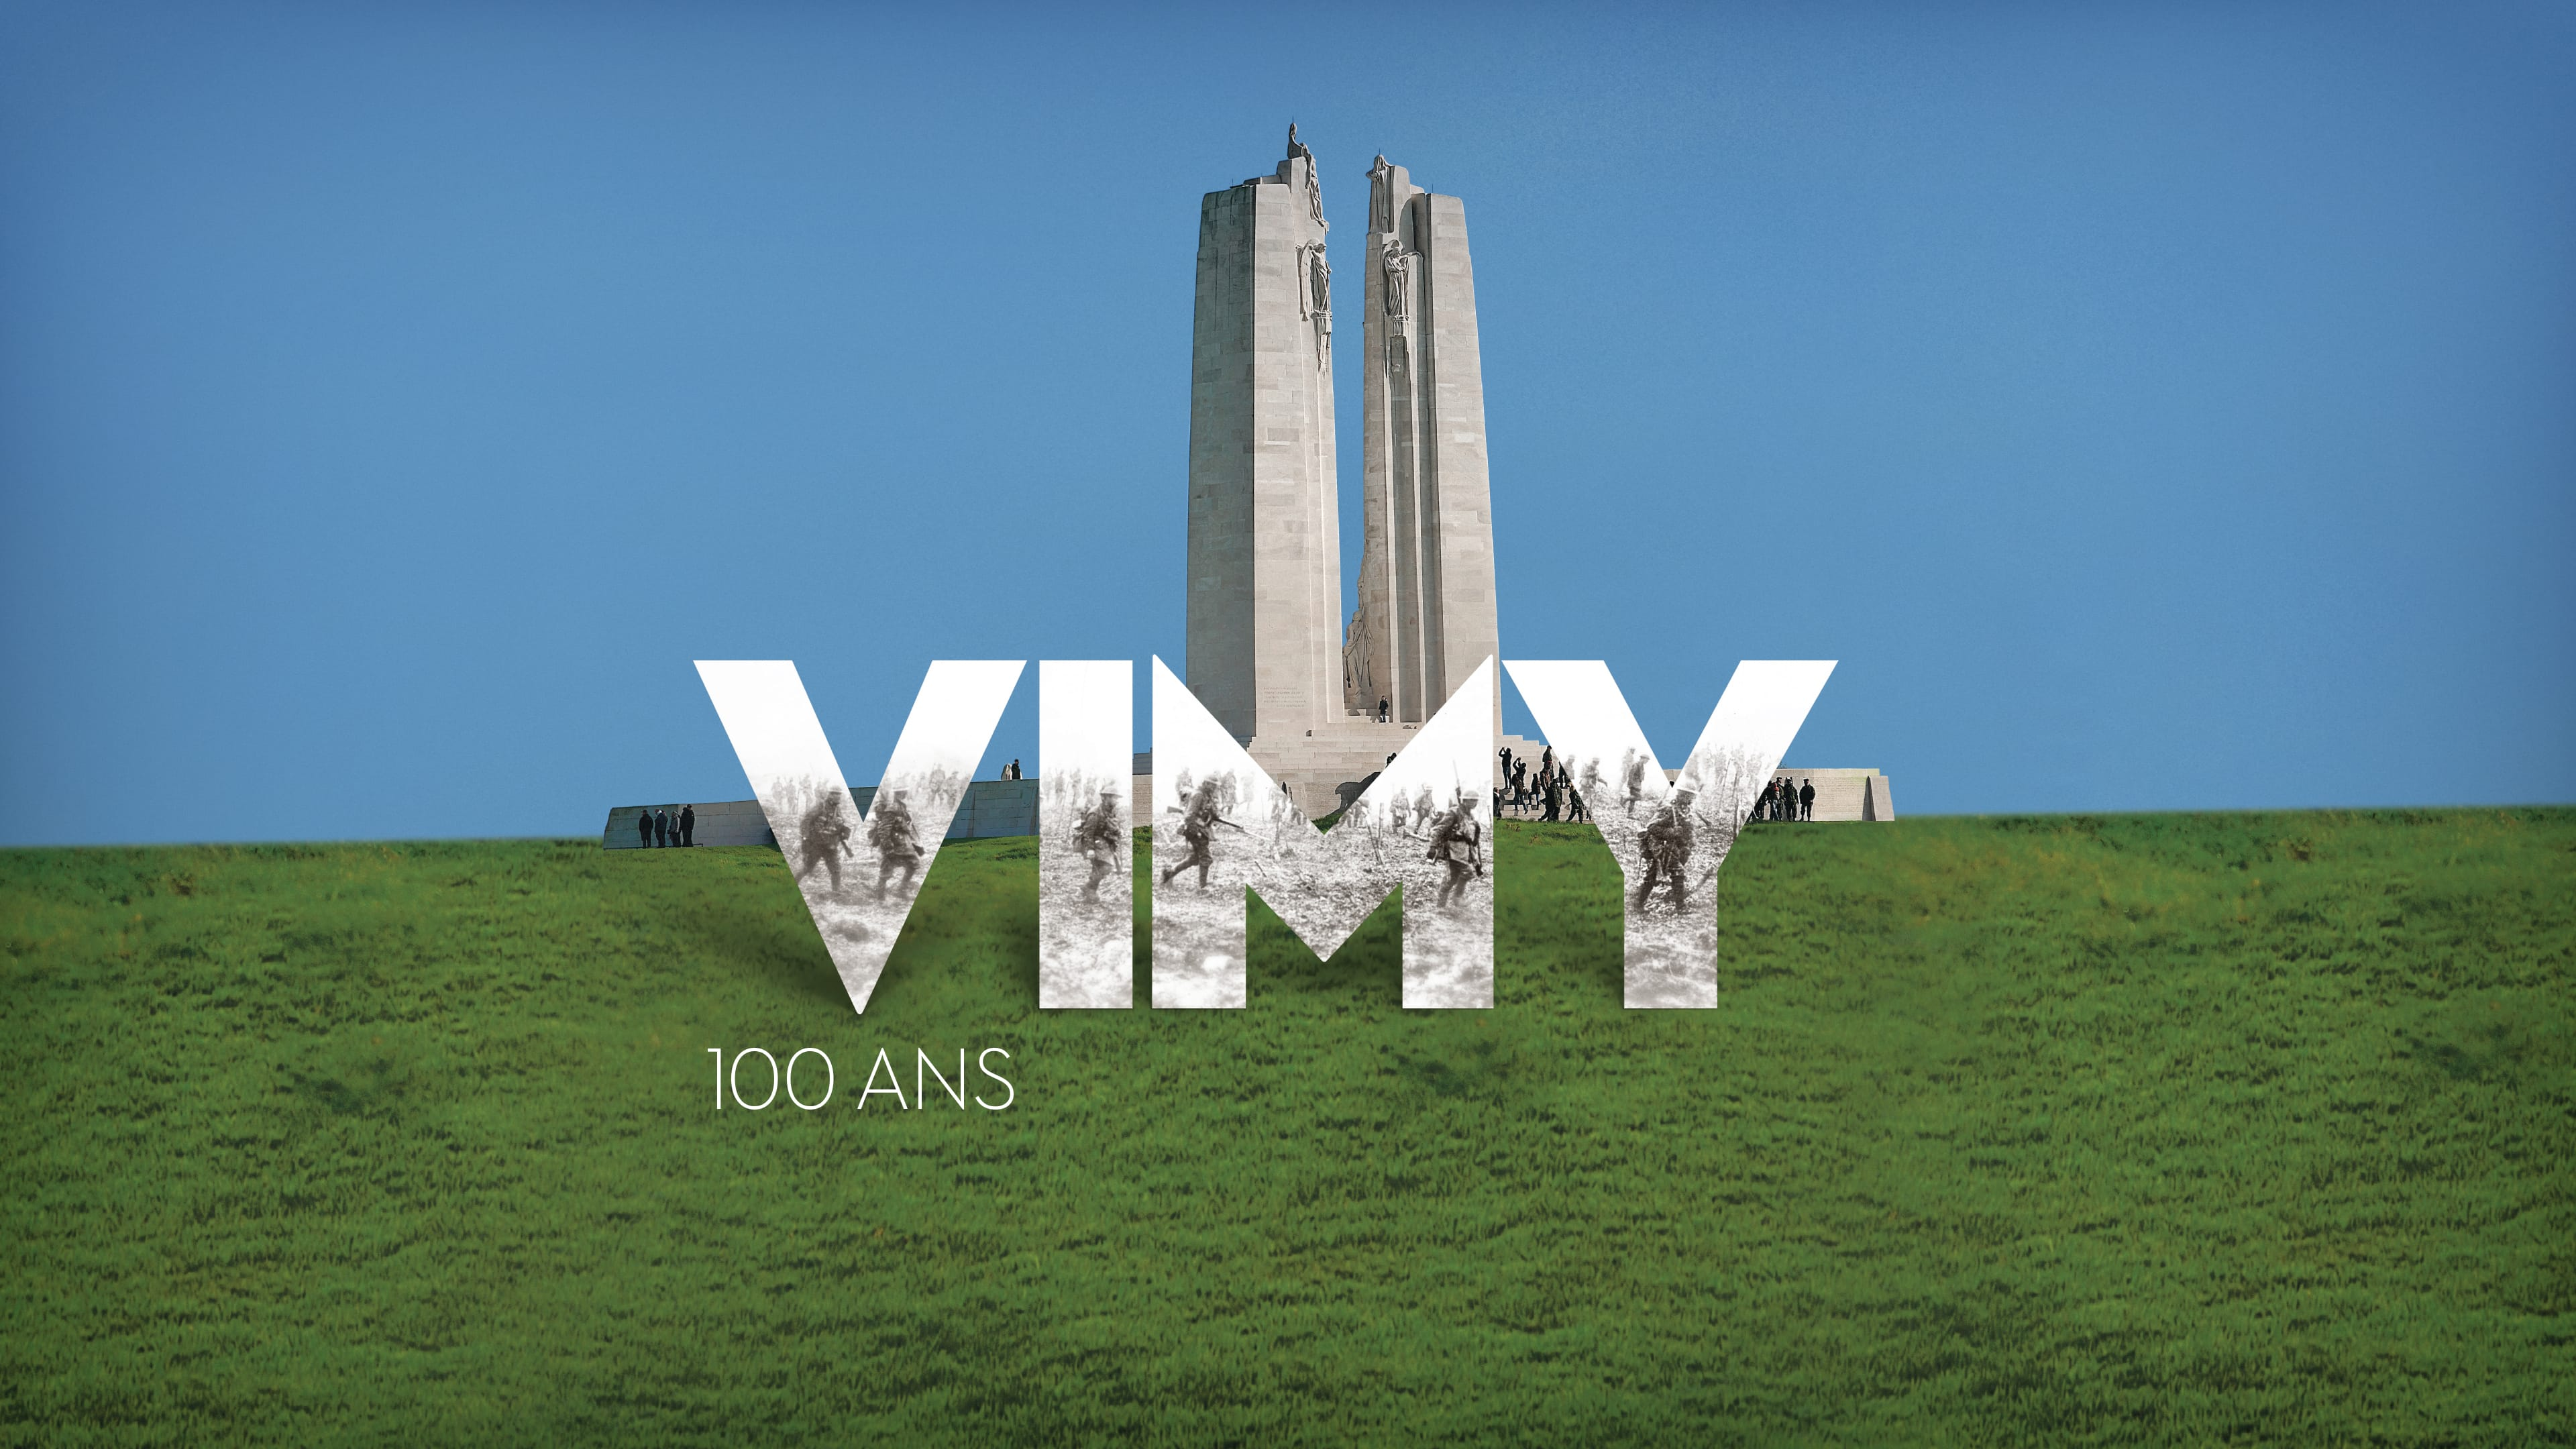 The limestone memorial and surrounding green field of the Canadian National Vimy Memorial. The words Vimy - 100 years overlaid on top. A black-and-white photograph of soldiers in at the Battle of Vimy Ridge shows through the word Vimy.